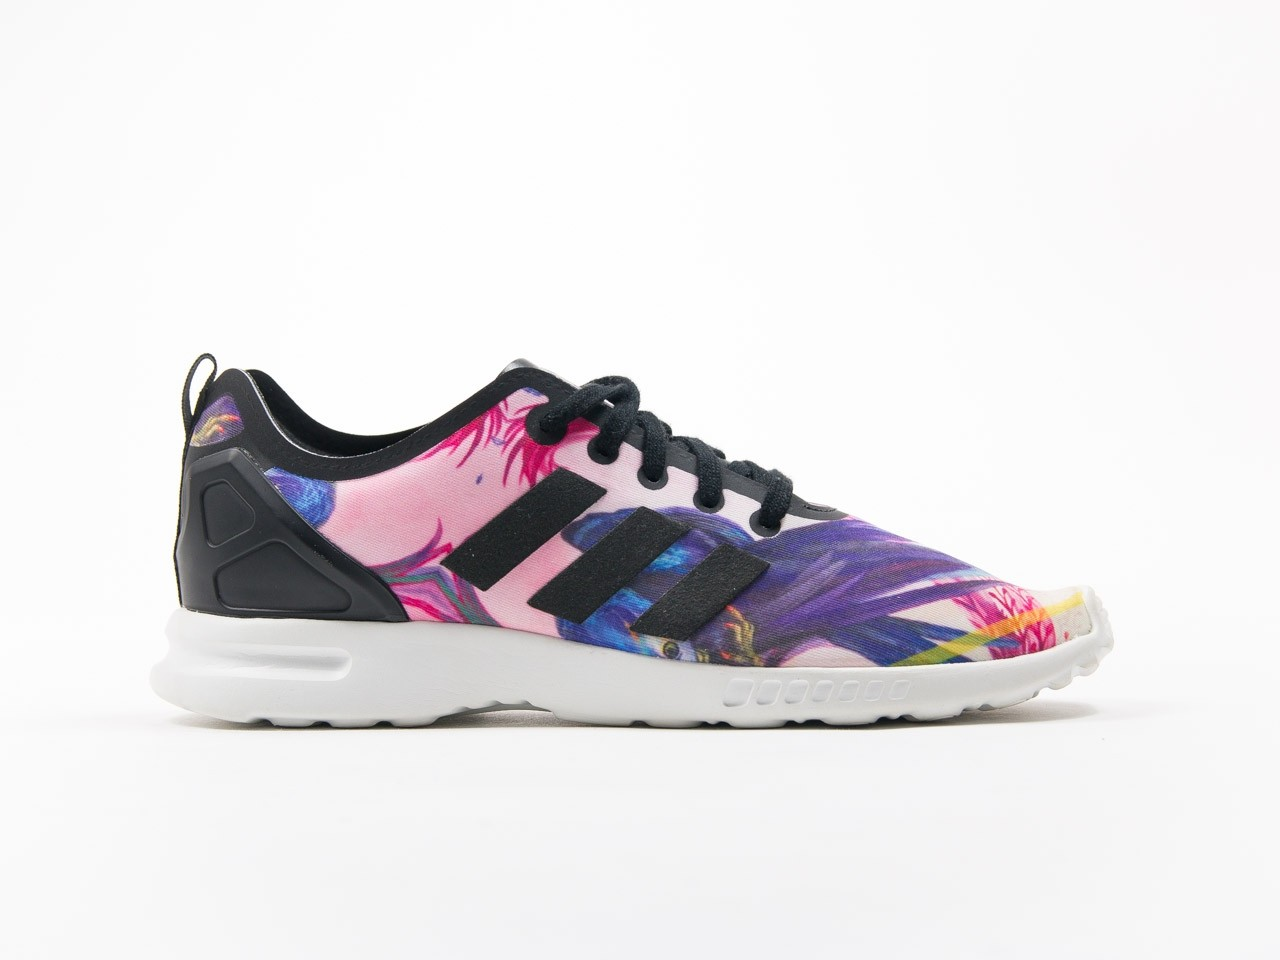 sale retailer cba7f 87460 zap-zx-flux-smooth-w-s82937.jpg